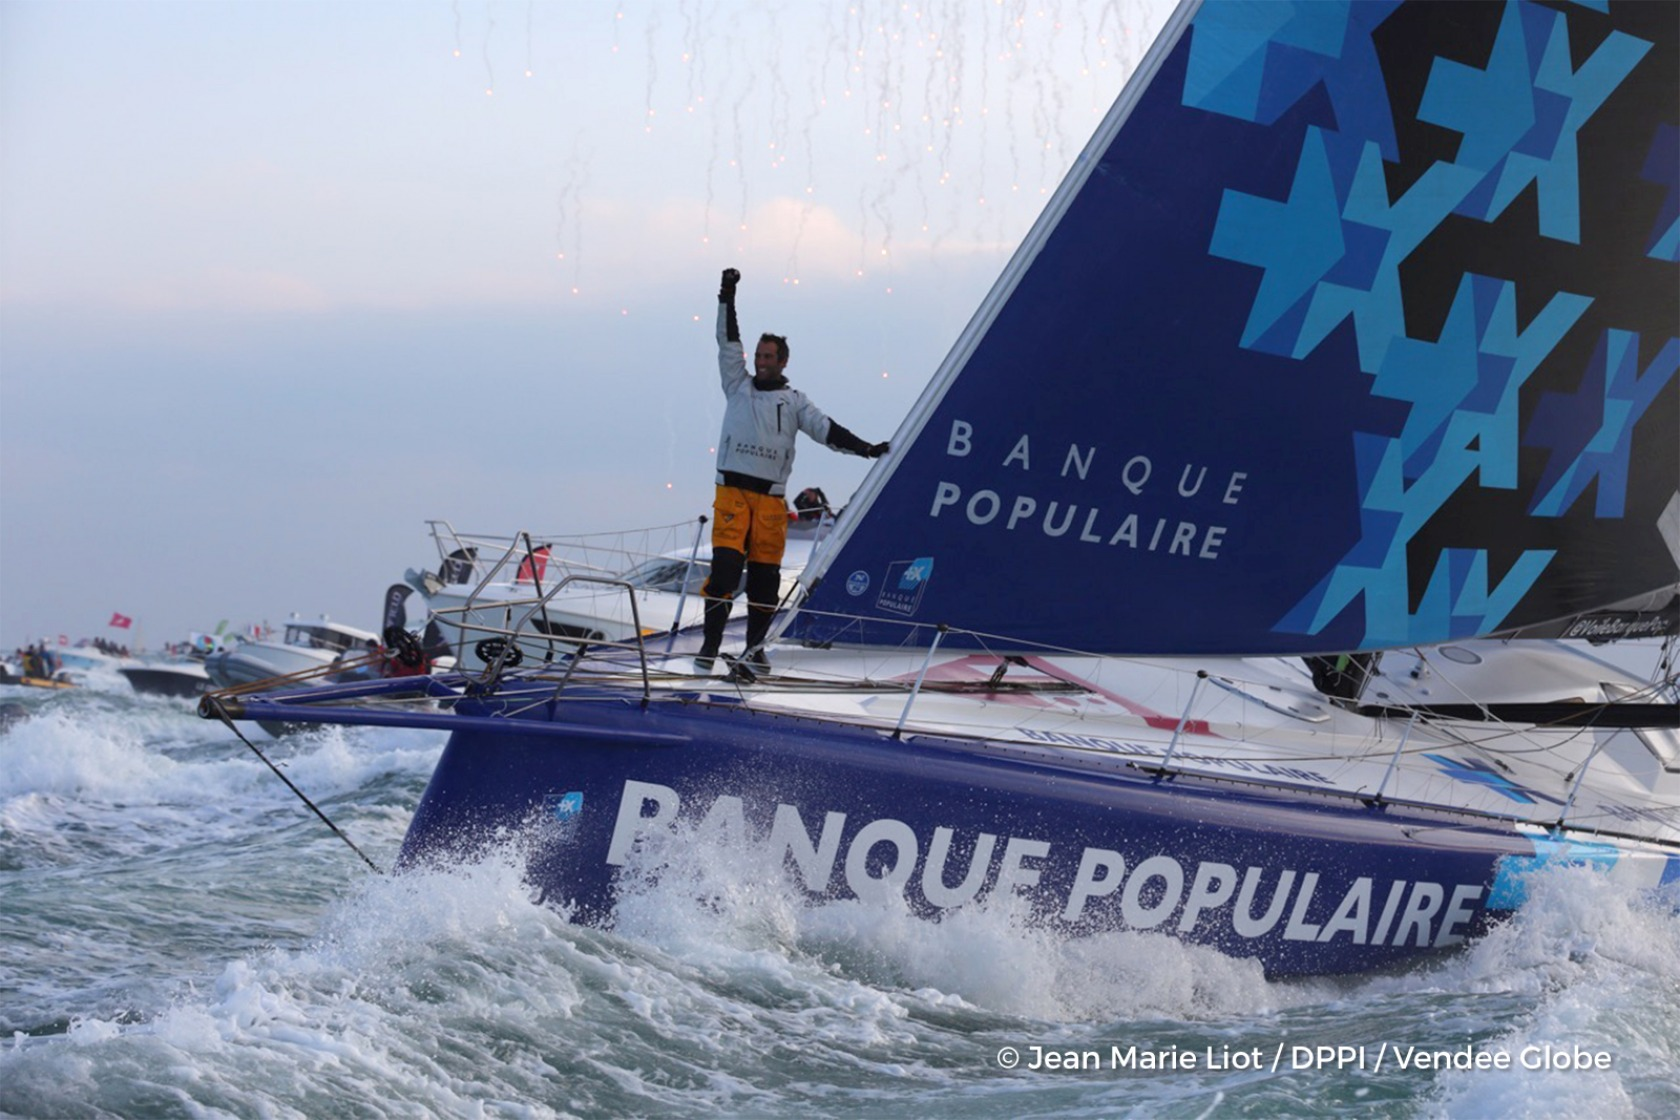 Finish arrival of Armel Le Cleac'h (FRA), skipper Banque Populaire VIII, winner of the sailing circumnavigation solo race Vendee Globe, in 74d 3h 35min 46sec, in Les Sables d'Olonne, France, on January 19th, 2017 - Photo Jean Marie Liot / DPPI / Vendee Gl